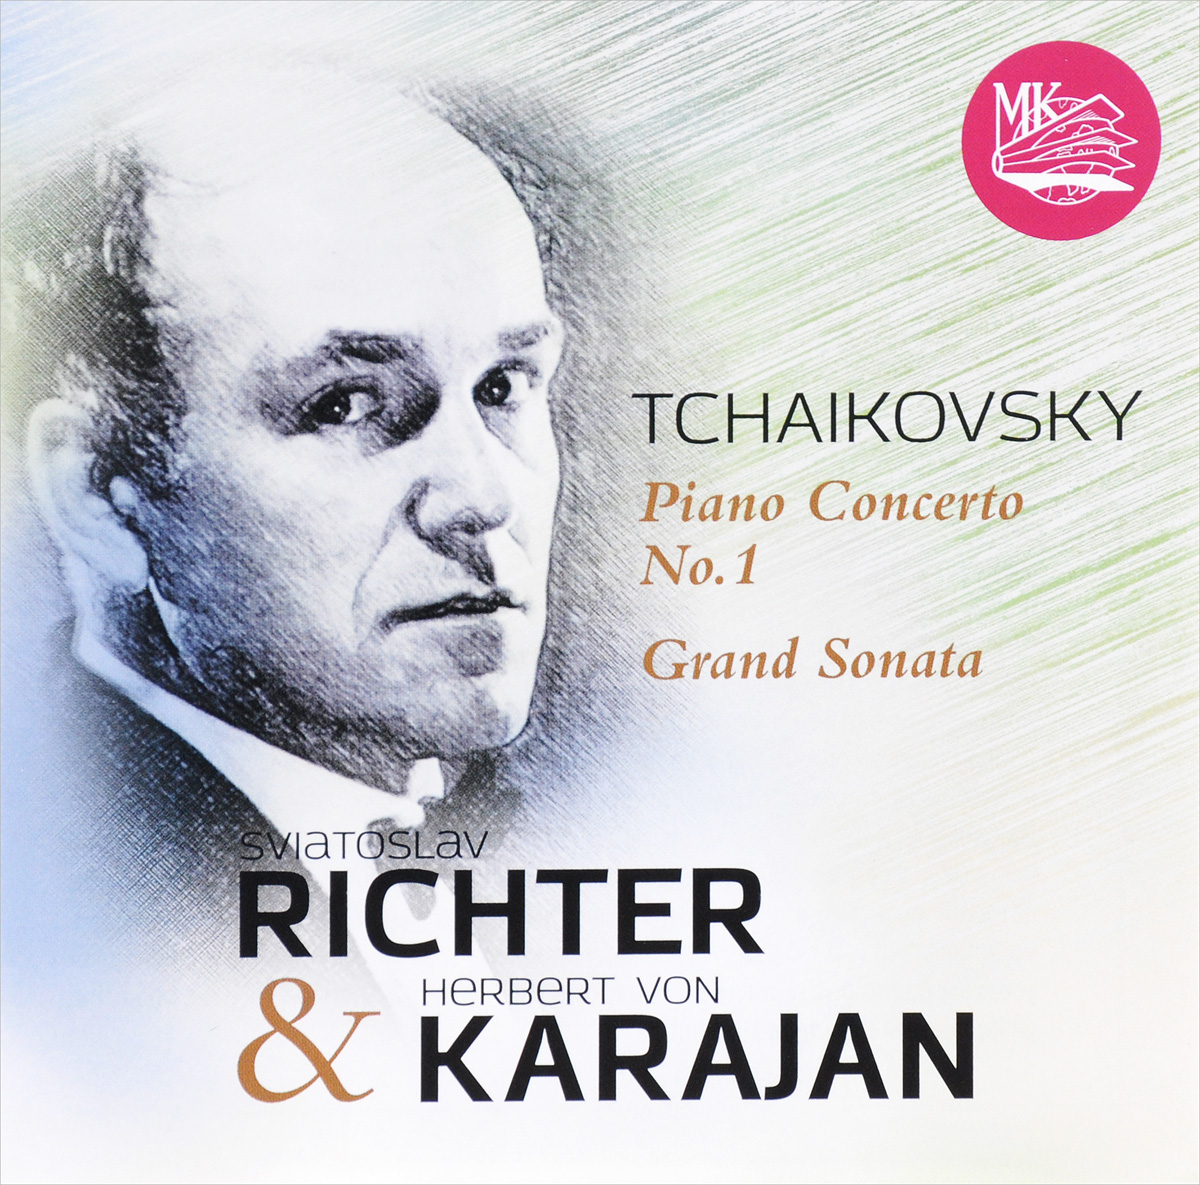 Герберт Караян,Святослав Рихтер Richter & Karajan. Tchaikovsky: Concerto No. 1 & Grand Sonata (CD) richter 12224255111 28